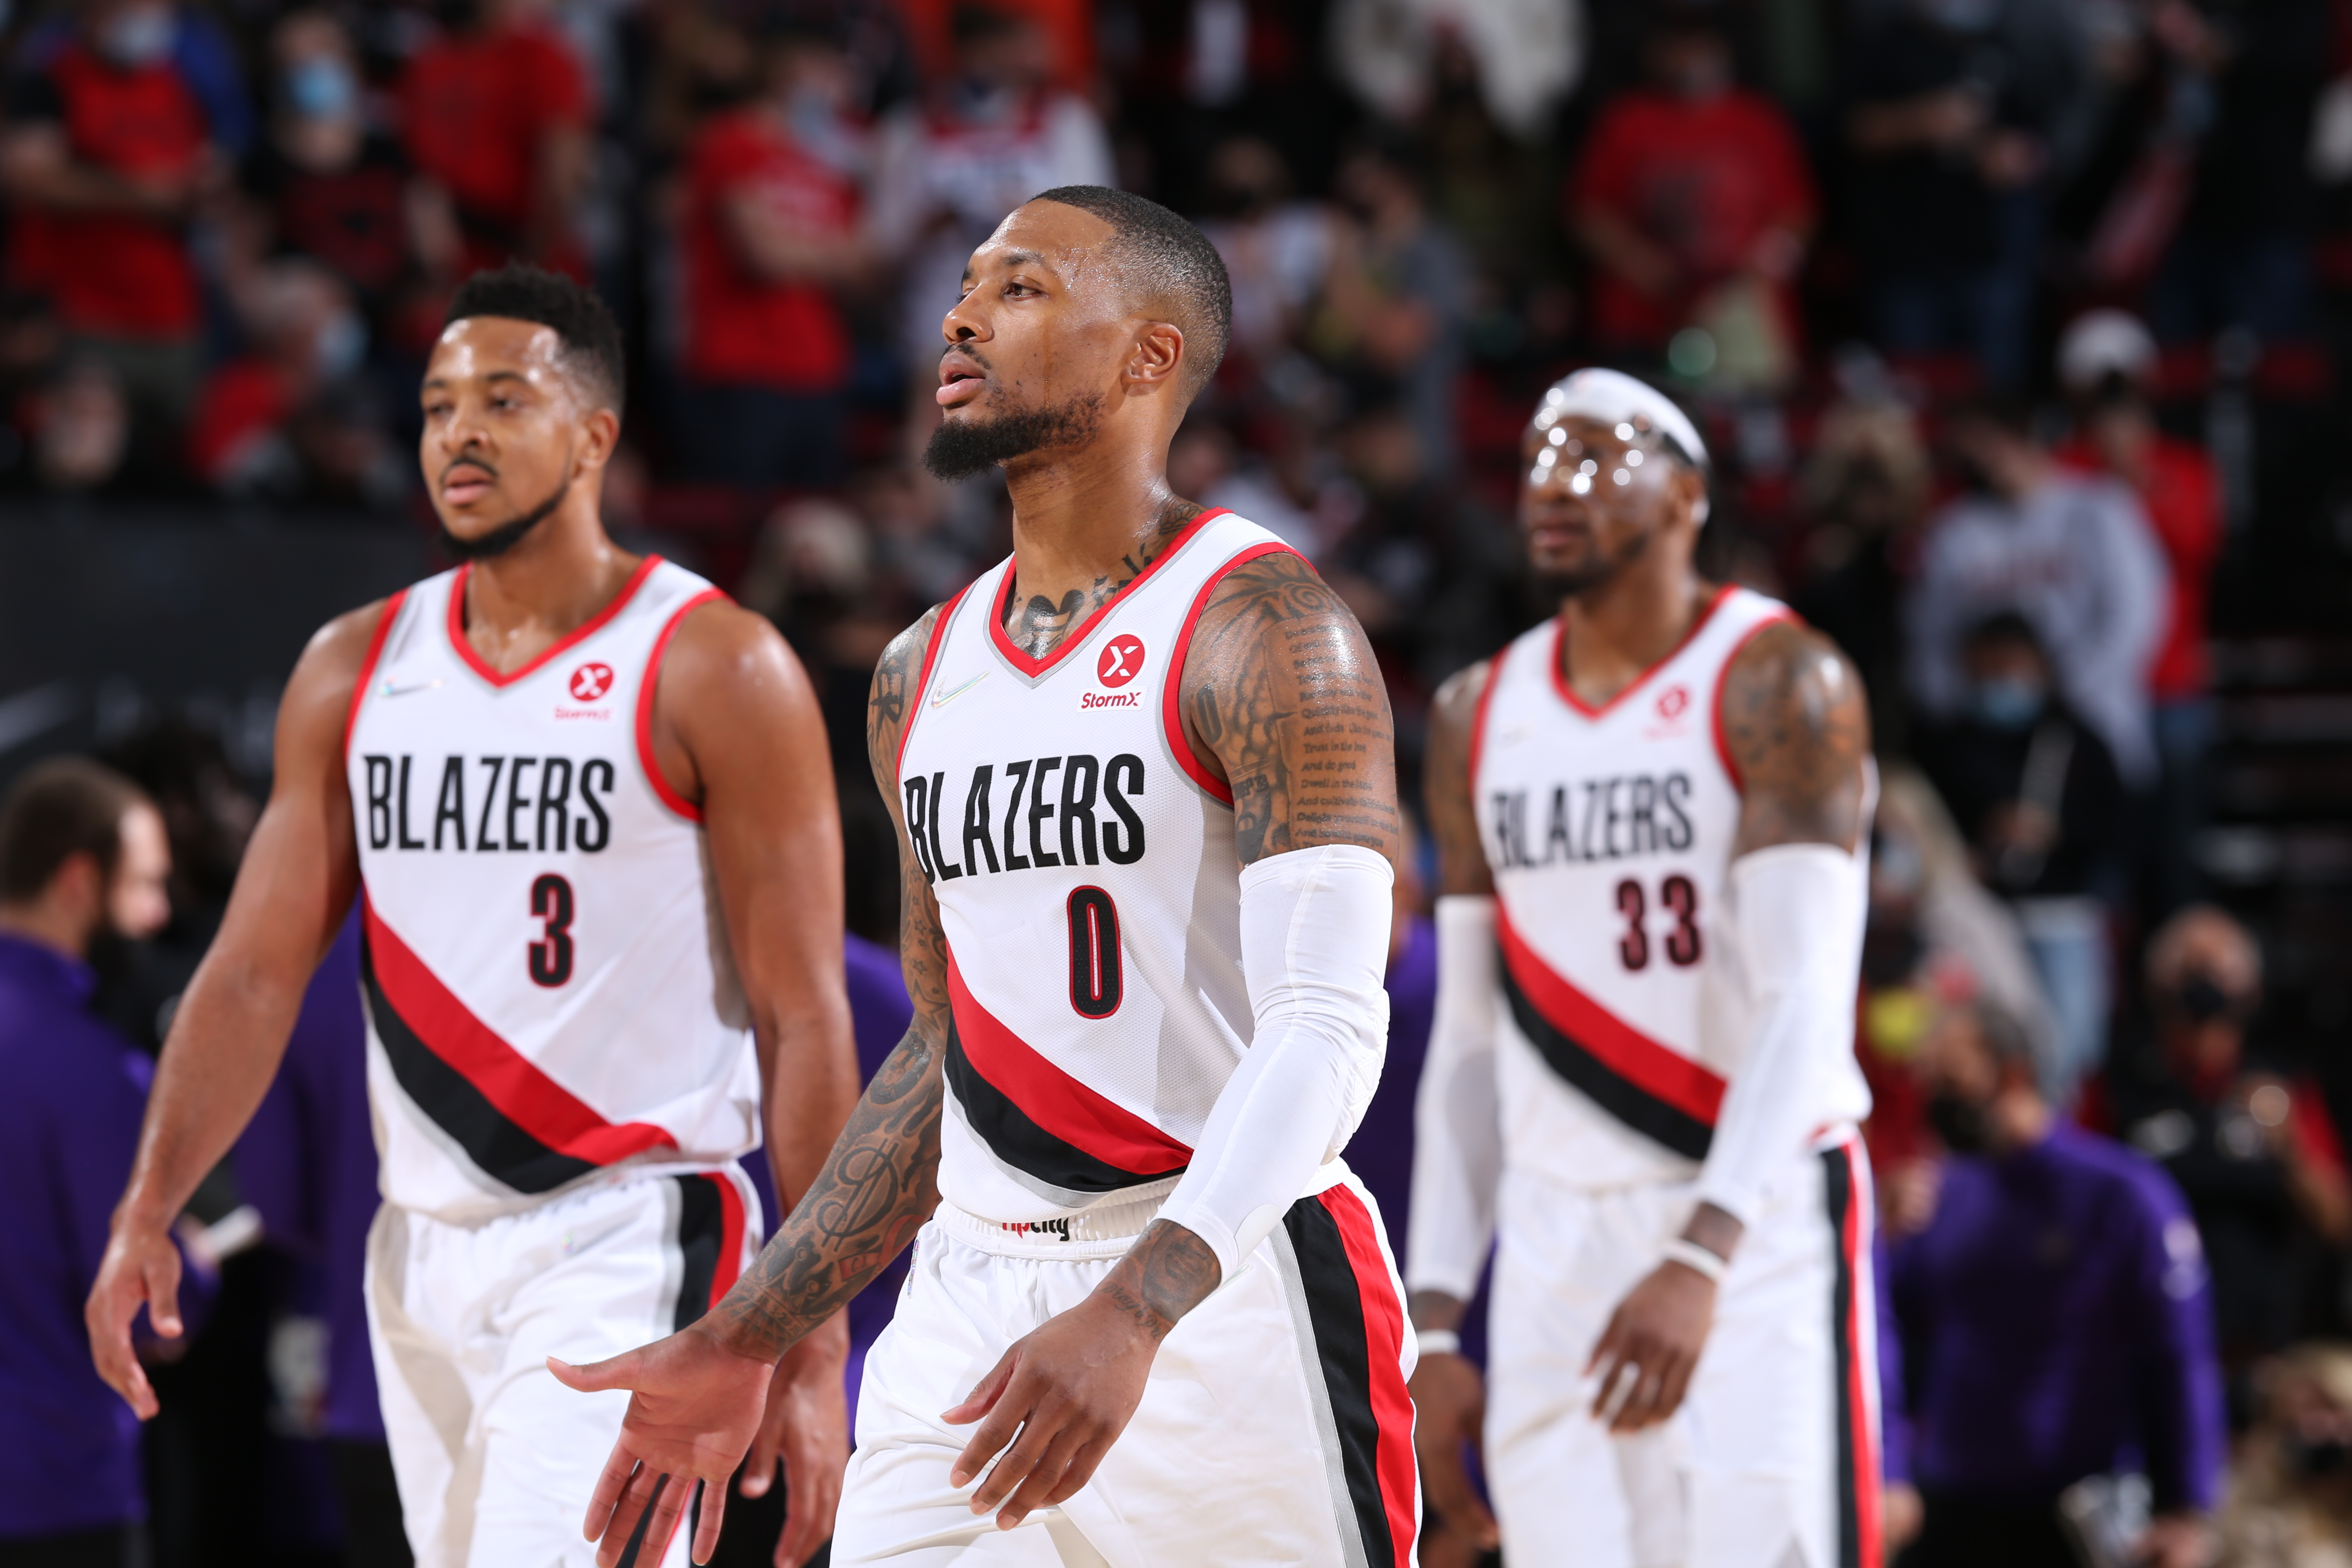 Damian Lillard #0 of the Portland Trail Blazers looks on during the game against the Sacramento Kings on October 20, 2021 at the Moda Center Arena in Portland, Oregon.